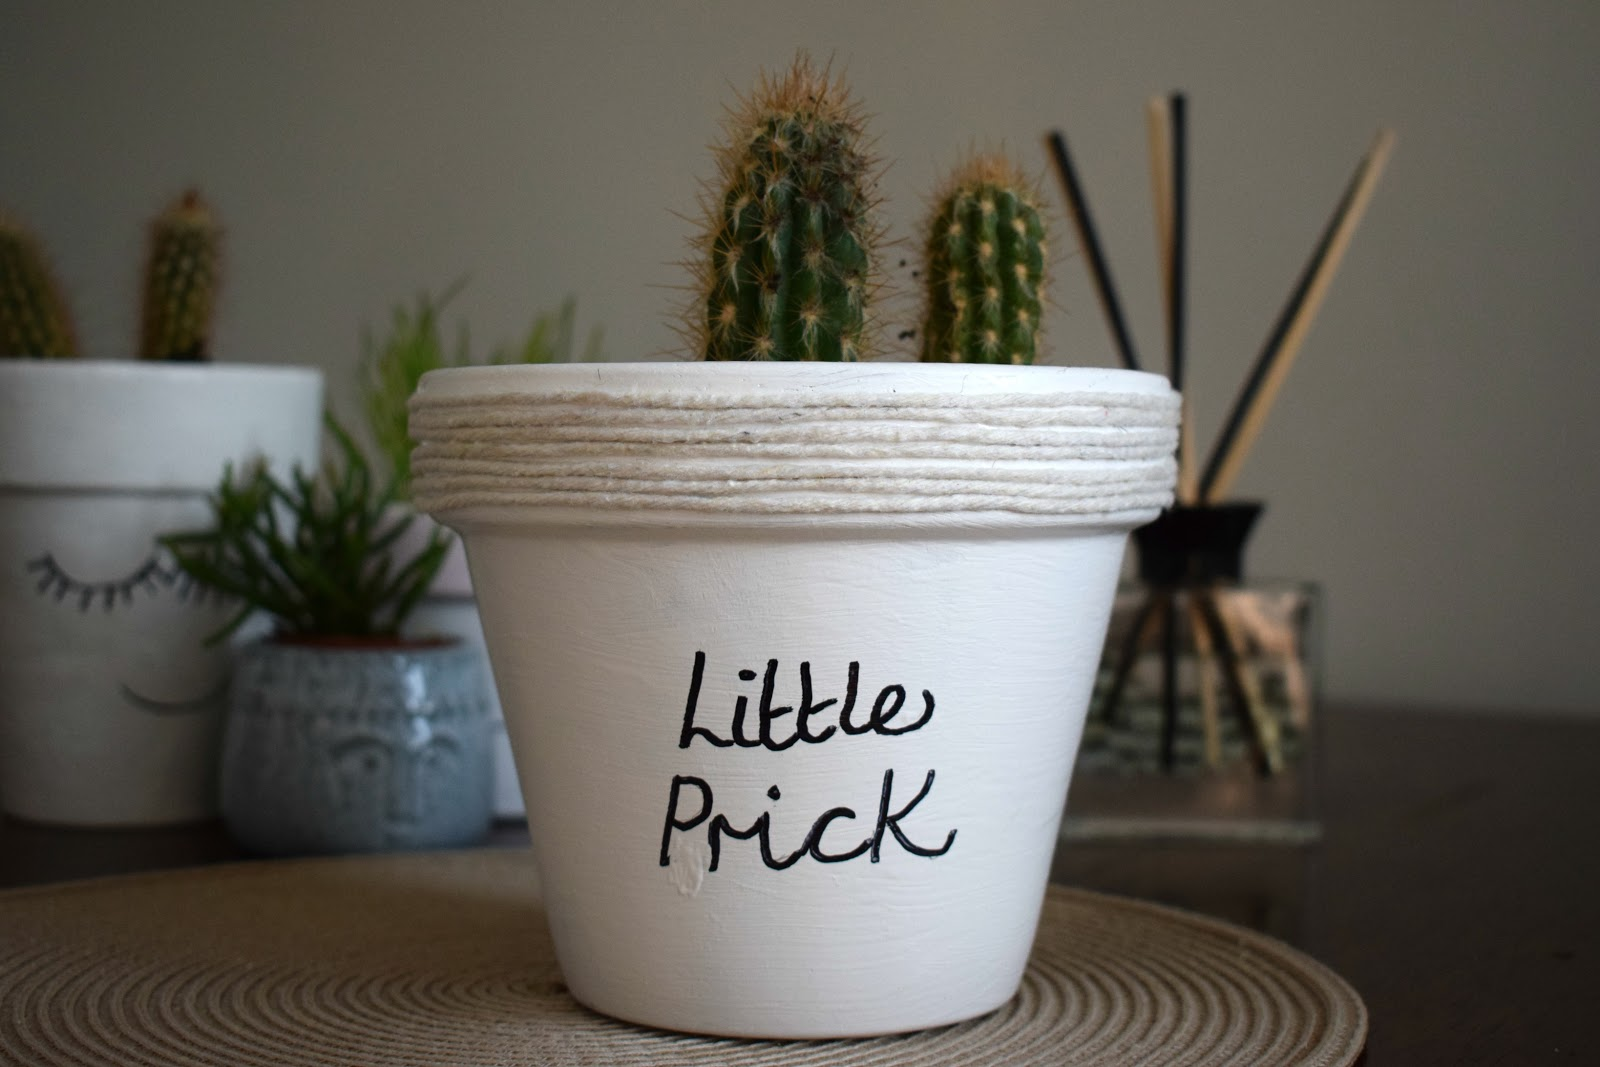 DIY making a cute cacti pot